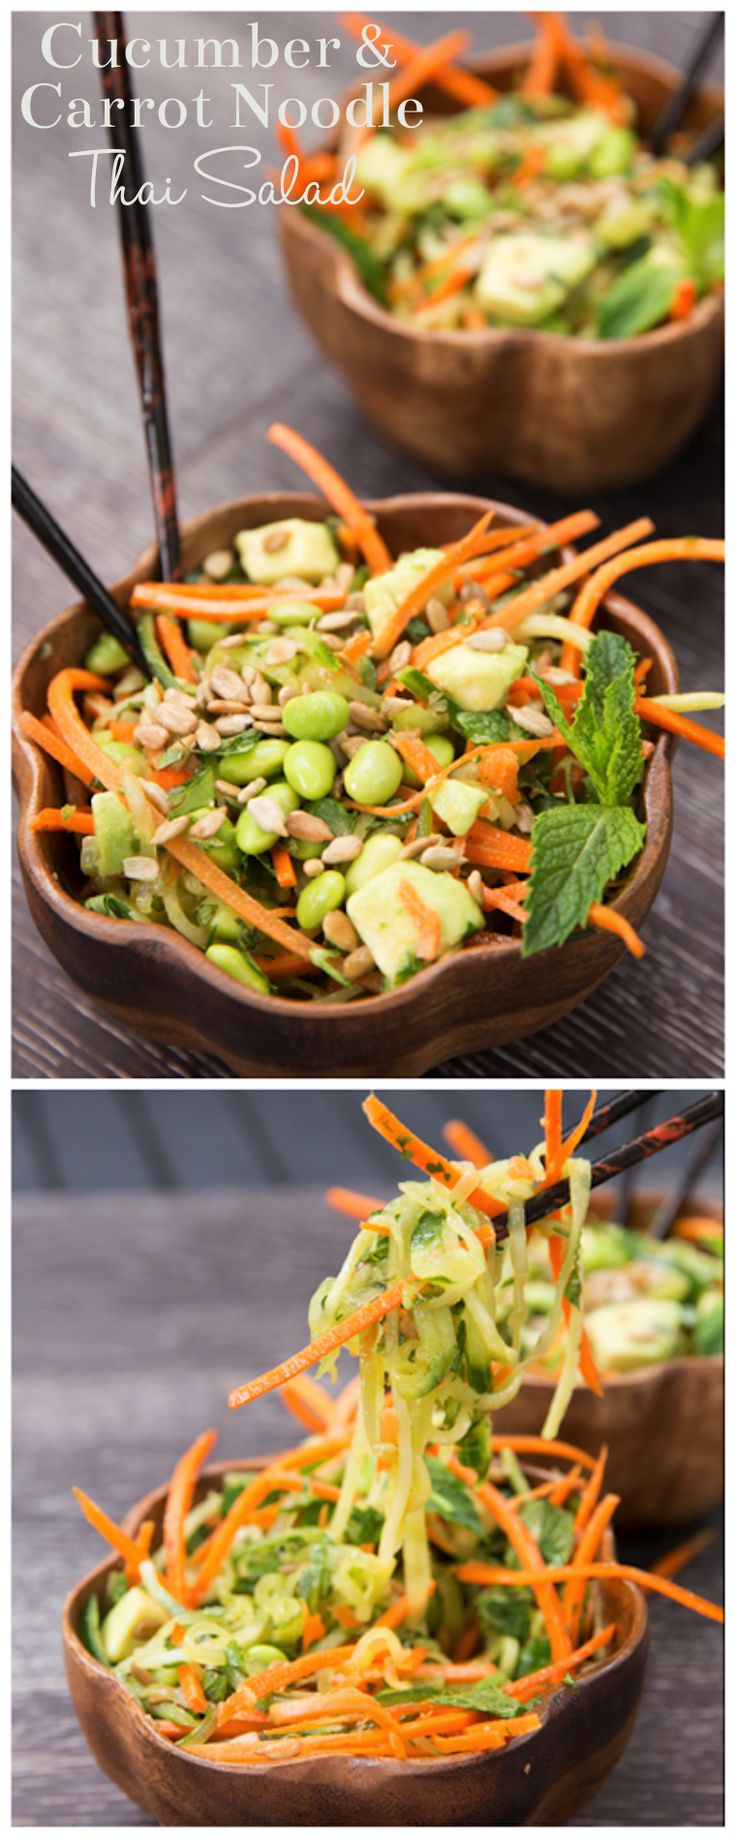 This cucumber & carrot noodle Thai salad will knock your socks off!